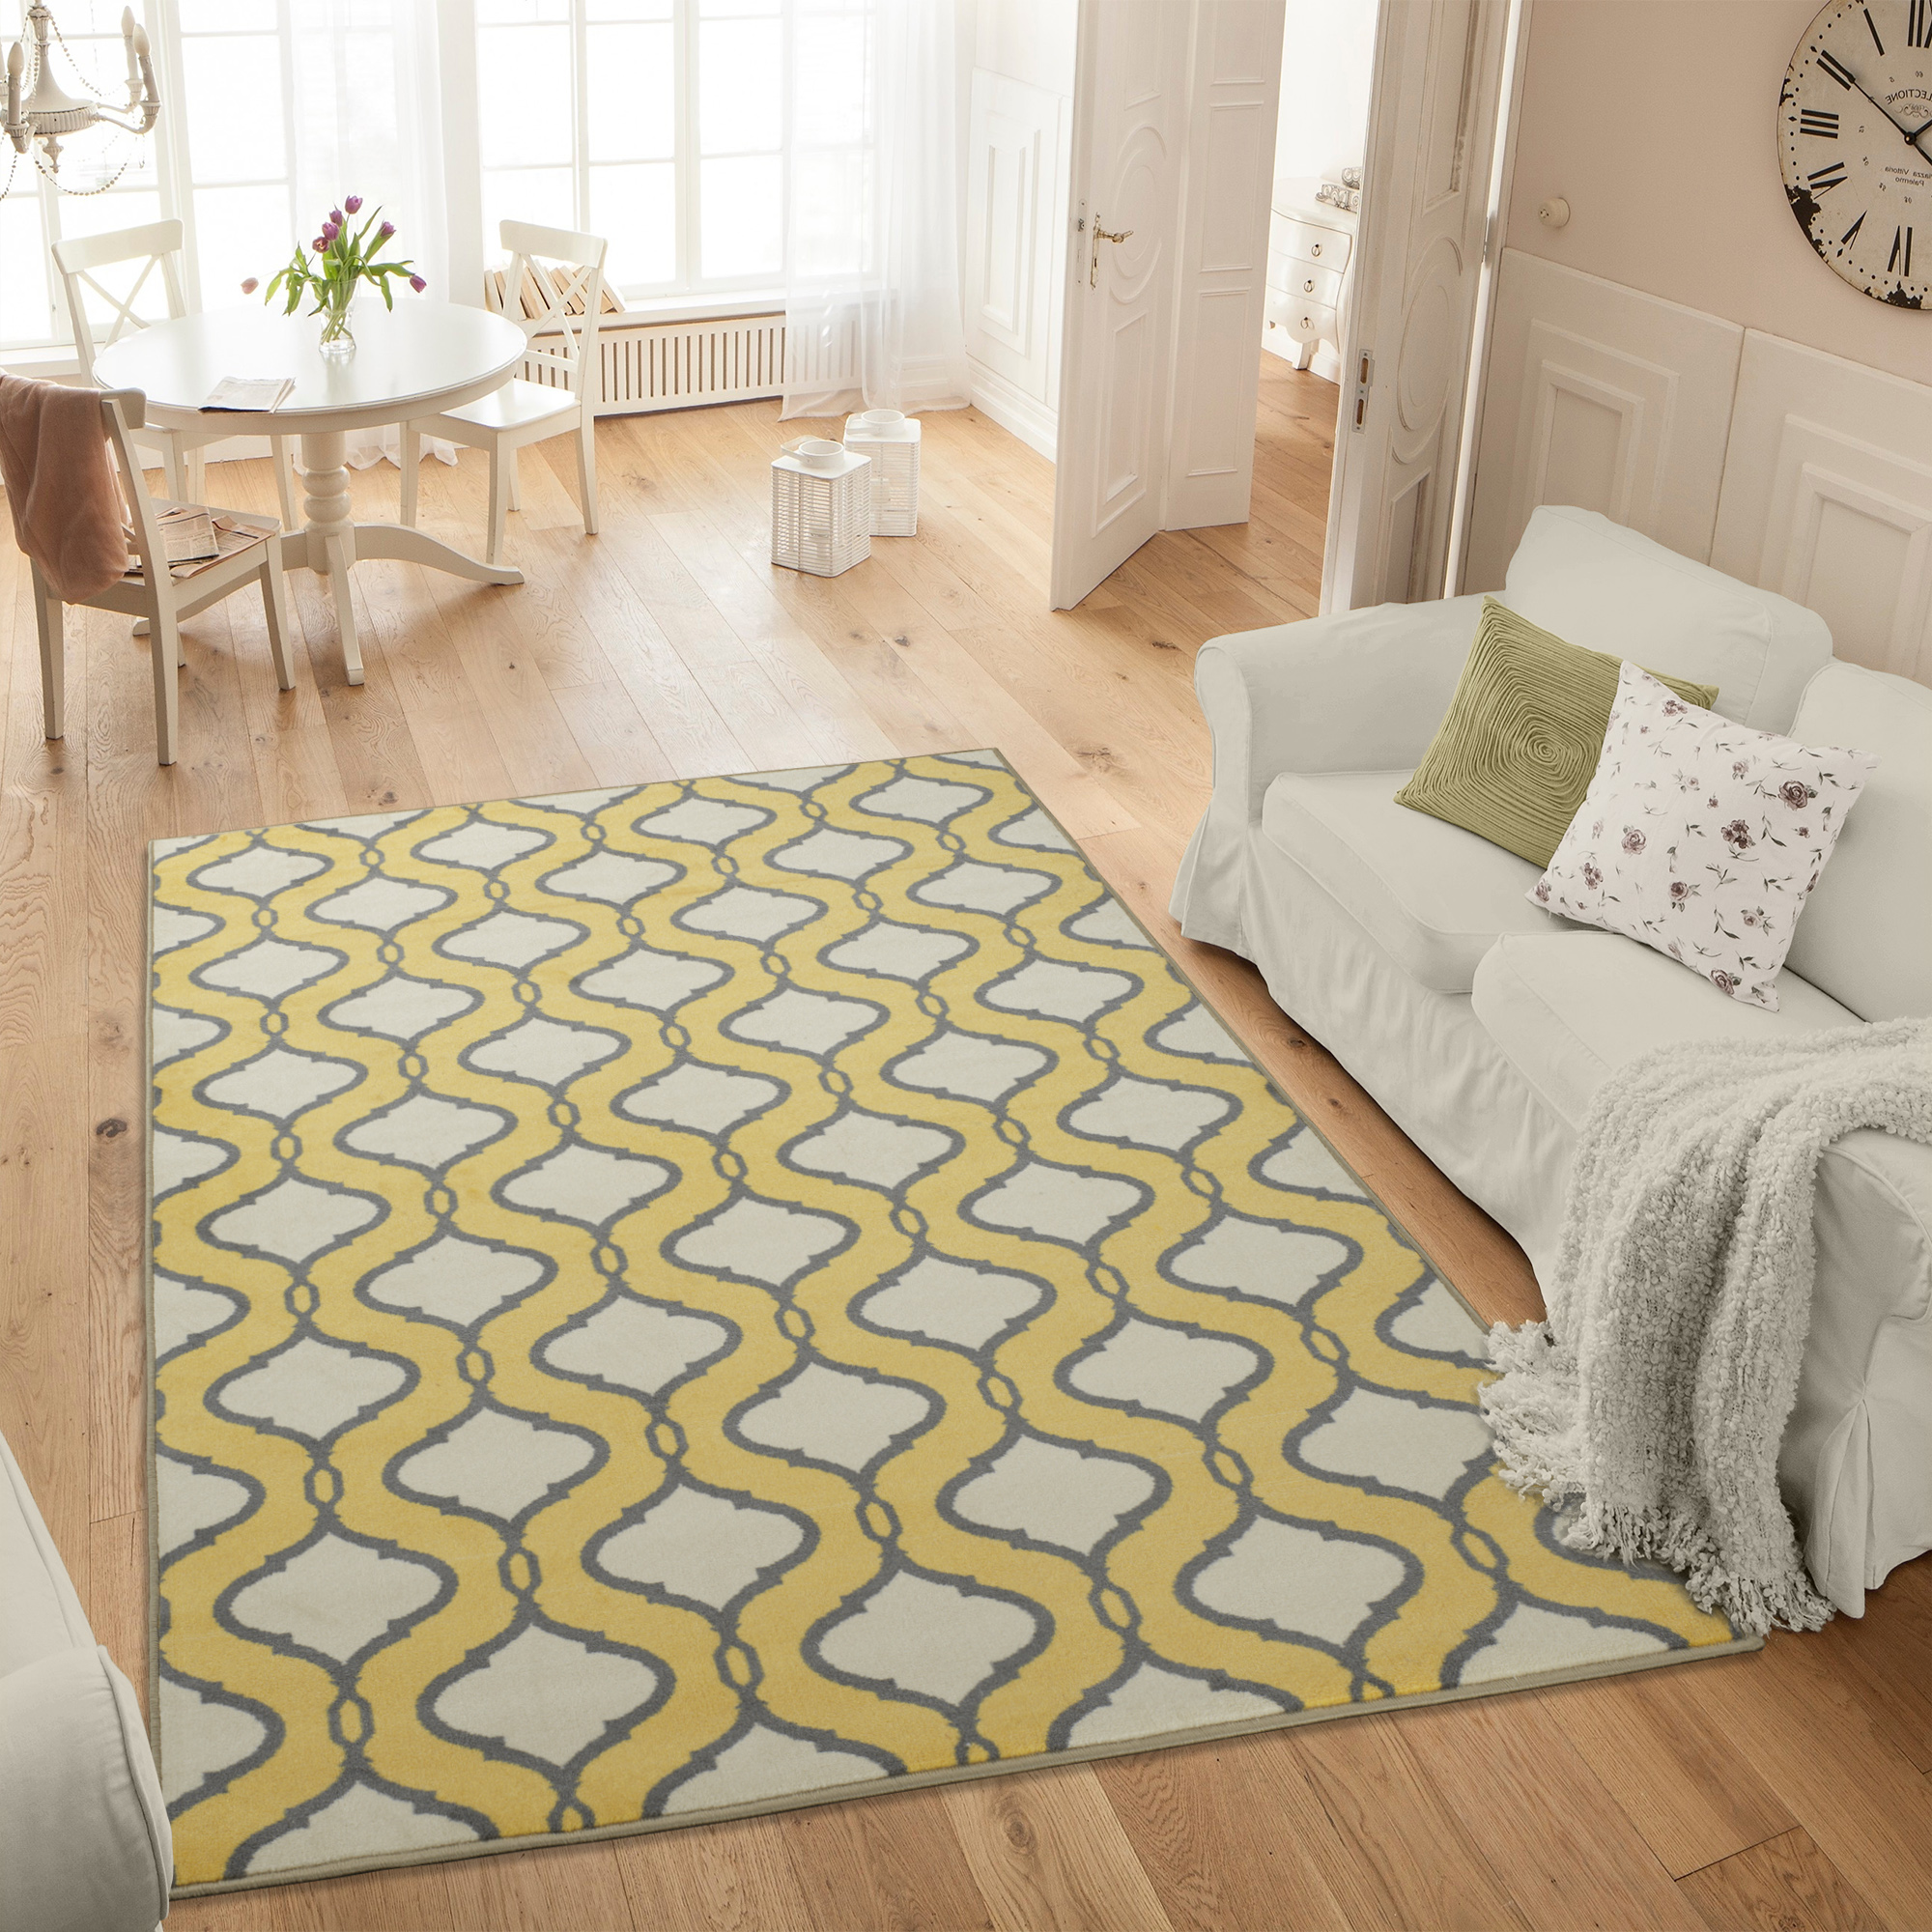 Ottomanson Studio Collection Yellow Trellis Design Area or Runner Rug